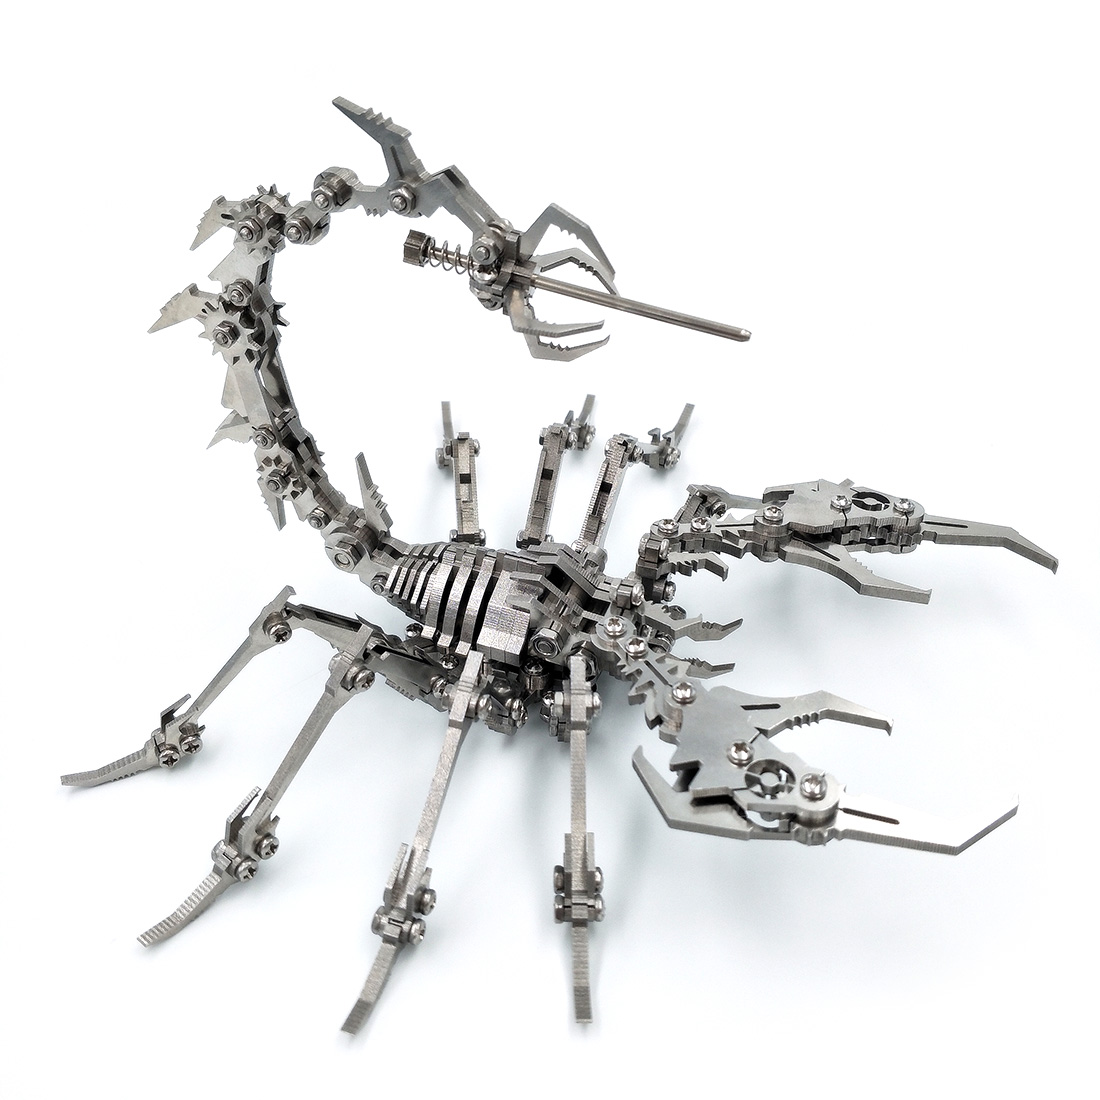 Scorpion King 3D Stainless Steel DIY Assembled Detachable Model Gift Ornaments Home Office Decoration Accessories